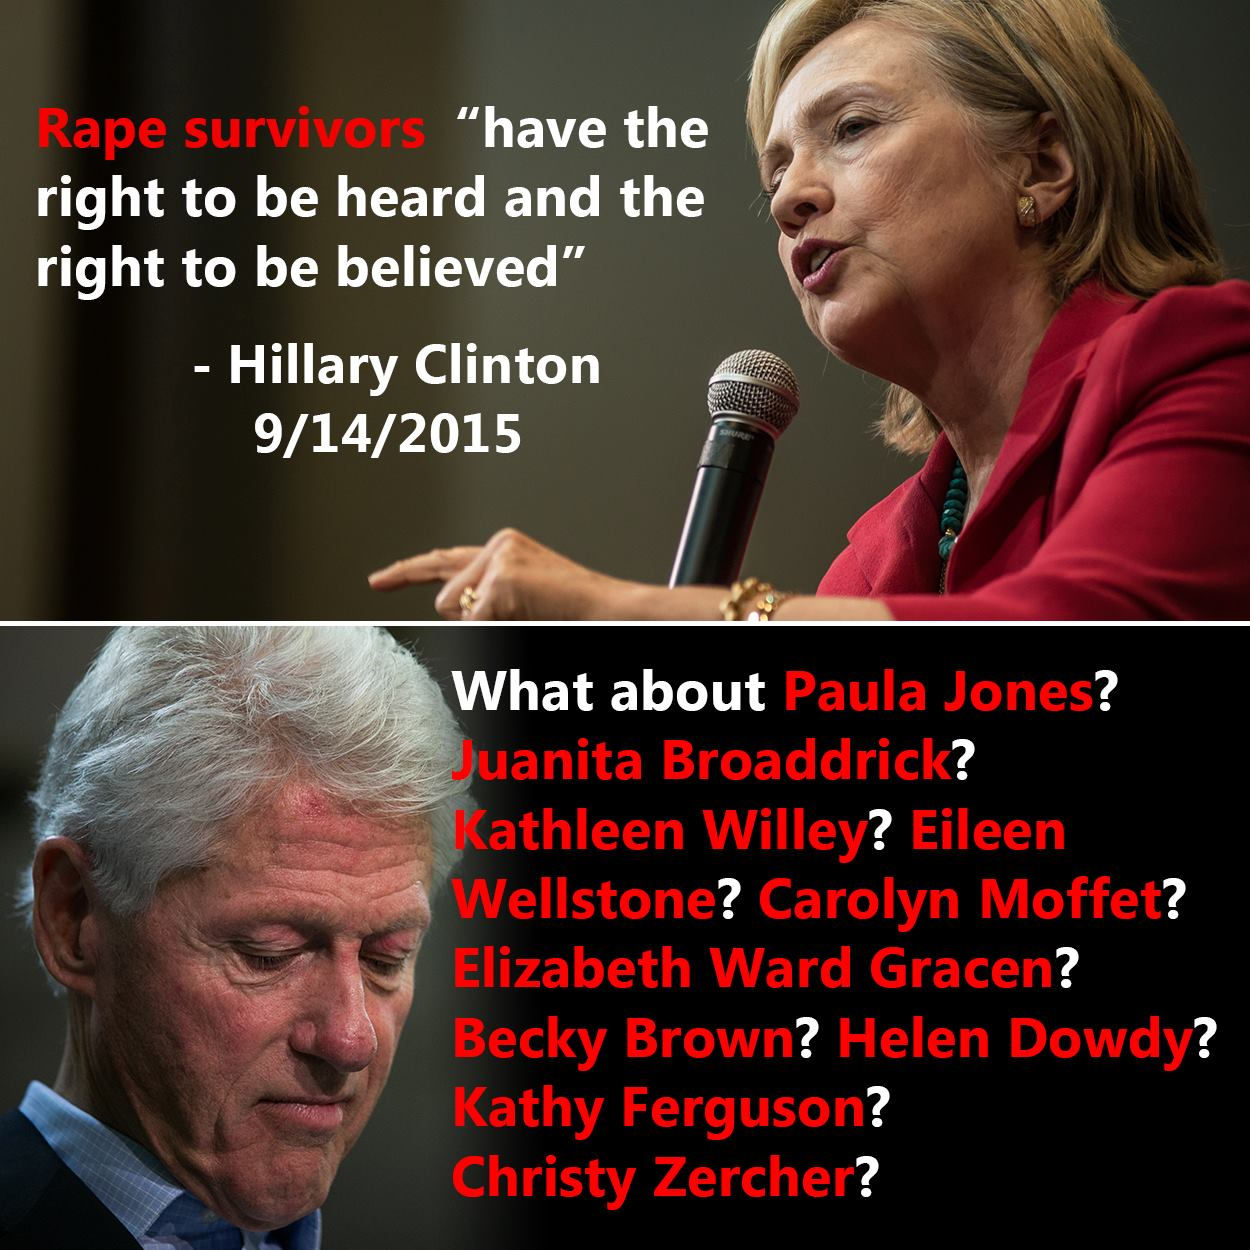 clinton-rapes